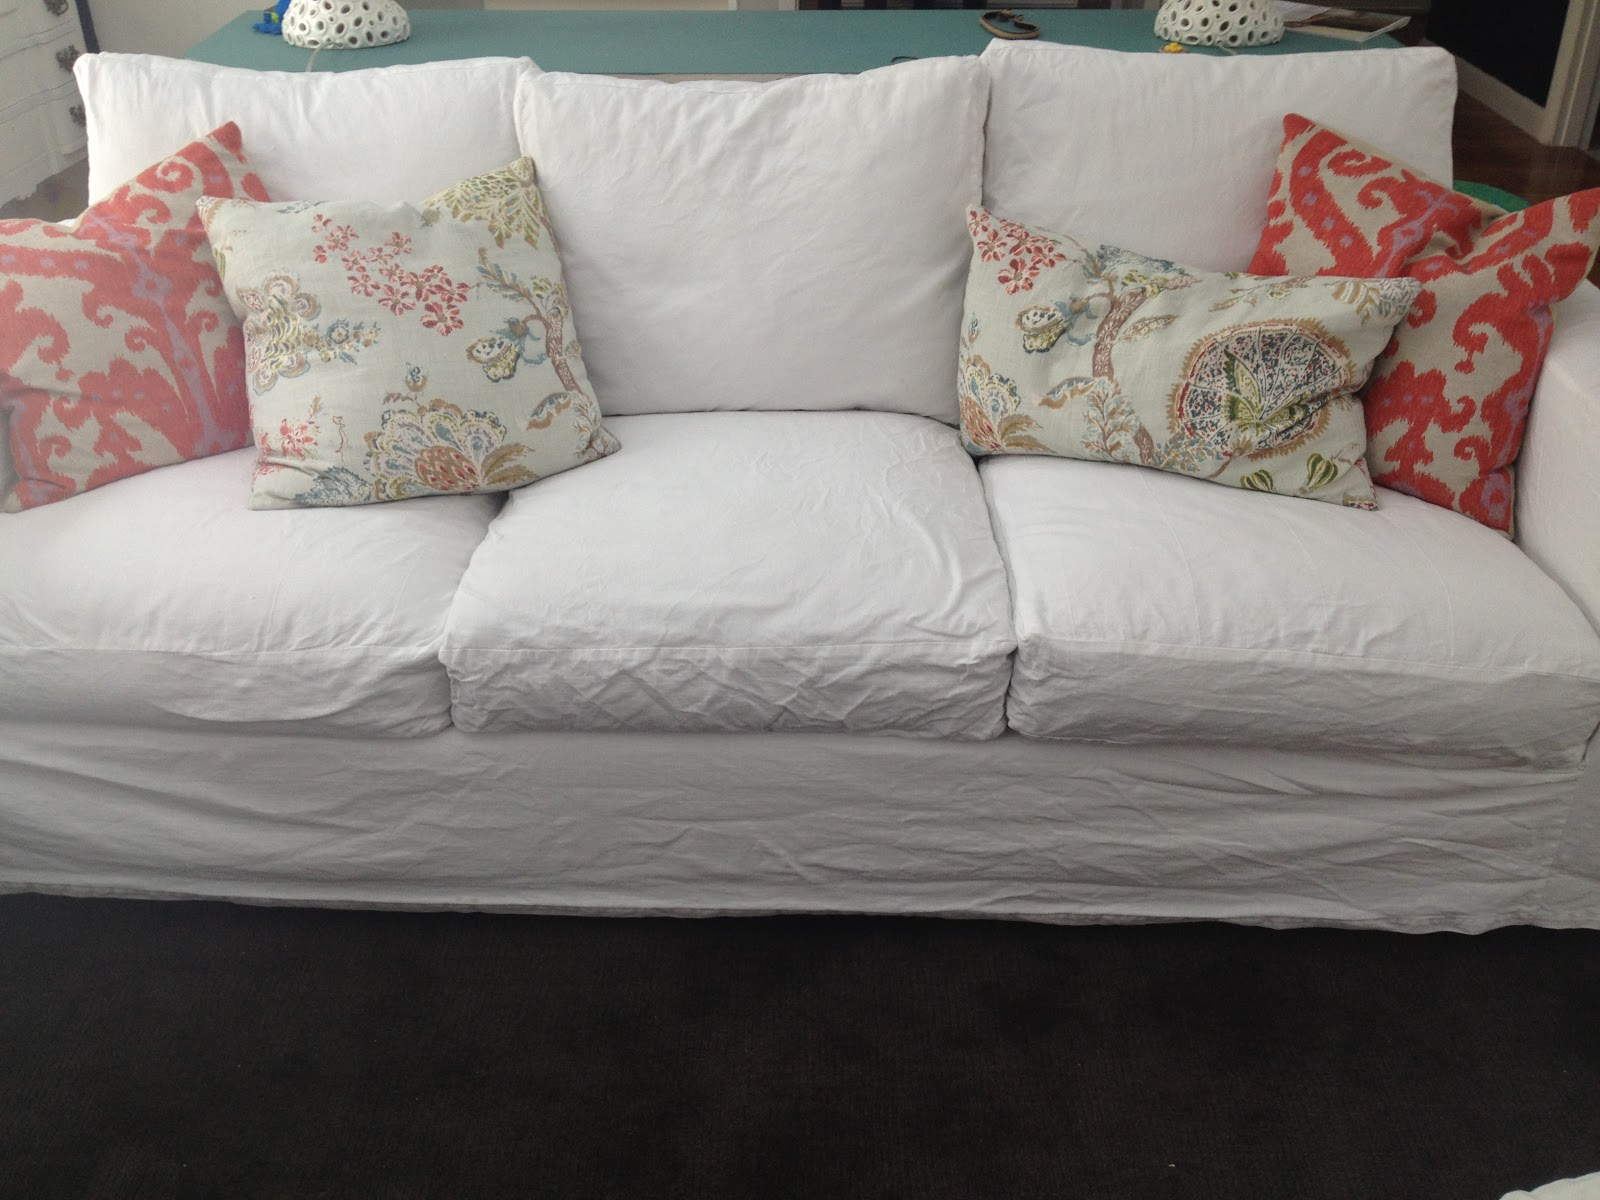 GORGEOUS SHINY THINGS Real Life White Slipcovers keeping it clean